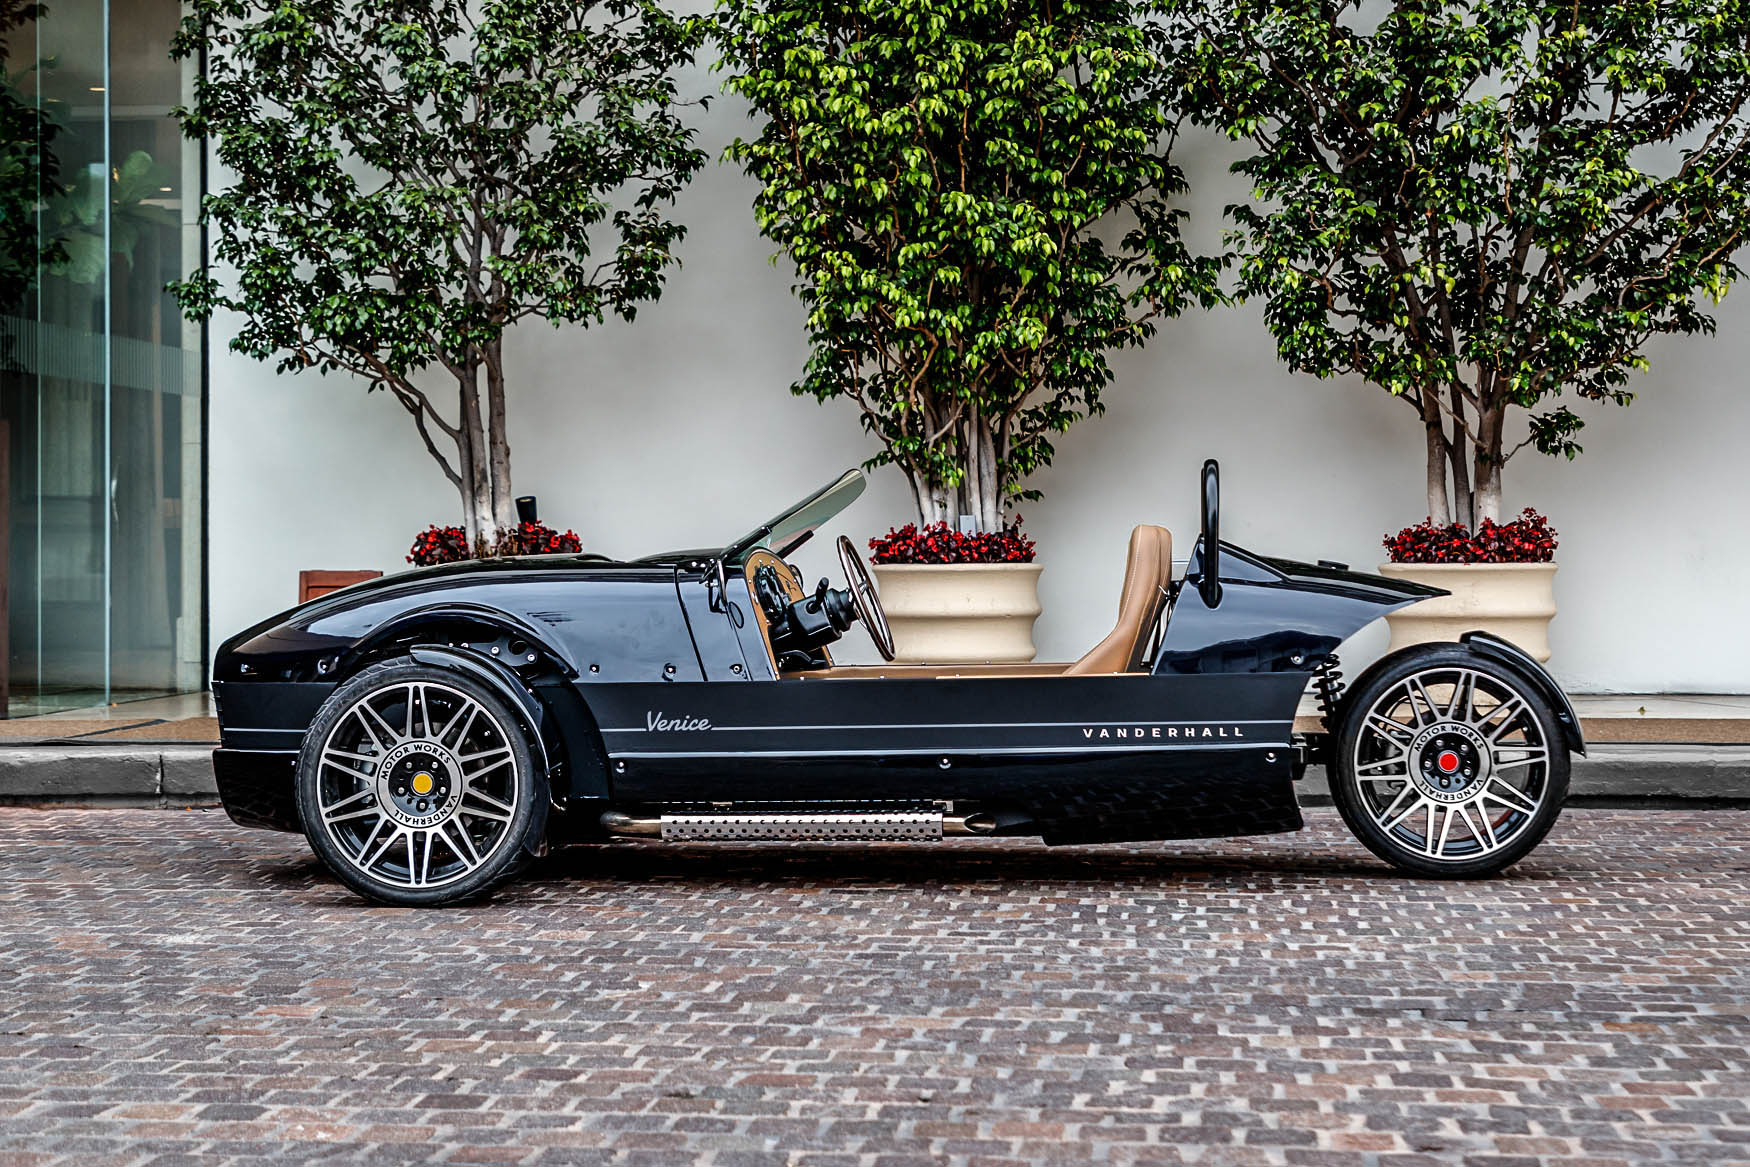 Vanderhall venice sideview with stainless exhaust